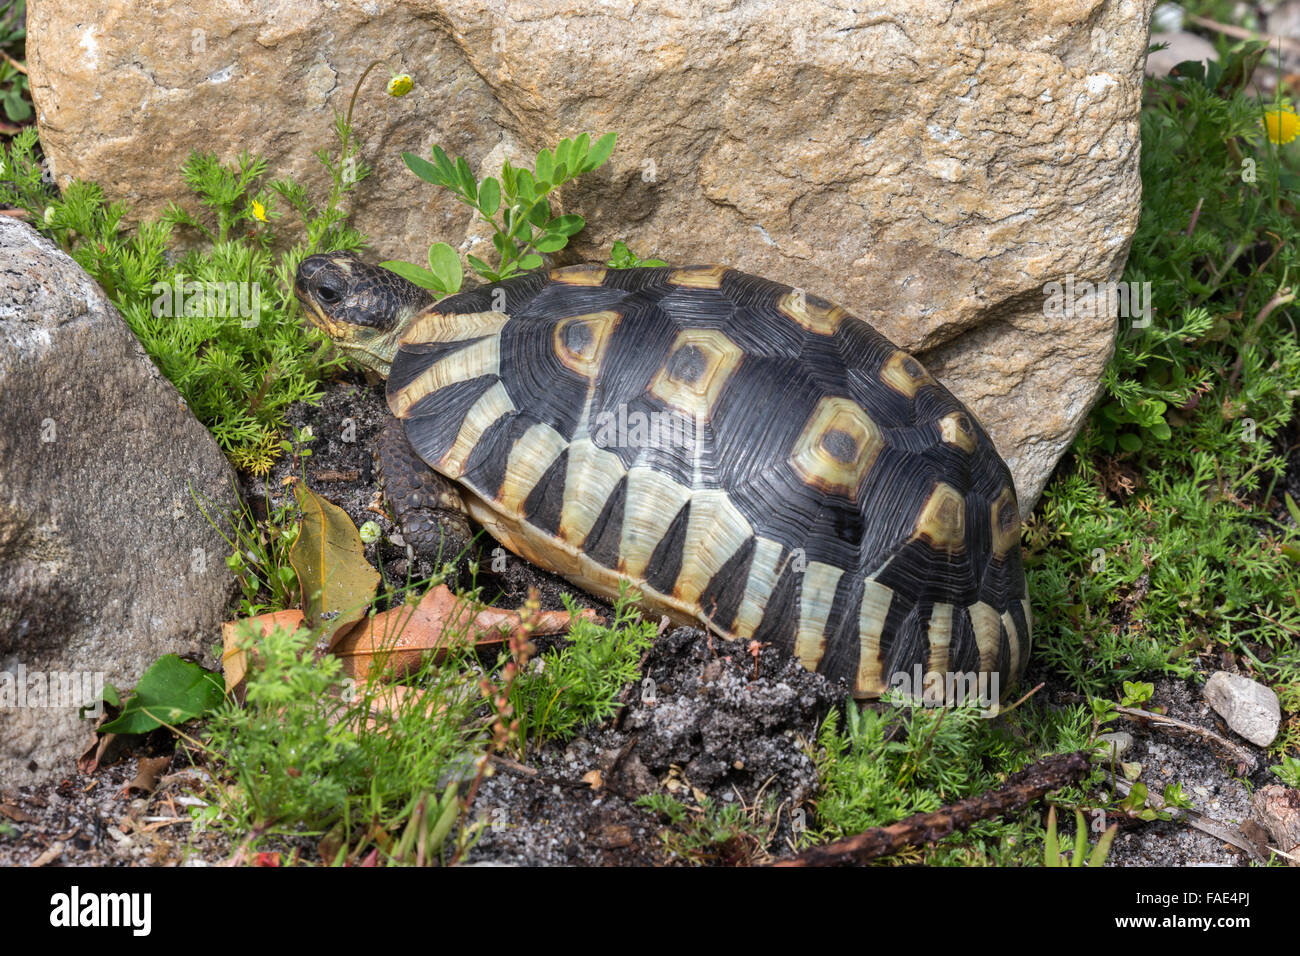 Leopard (mountain) tortoise (Stigmochelys pardalis), Table Mountain national park, Western Cape, South Africa - Stock Image